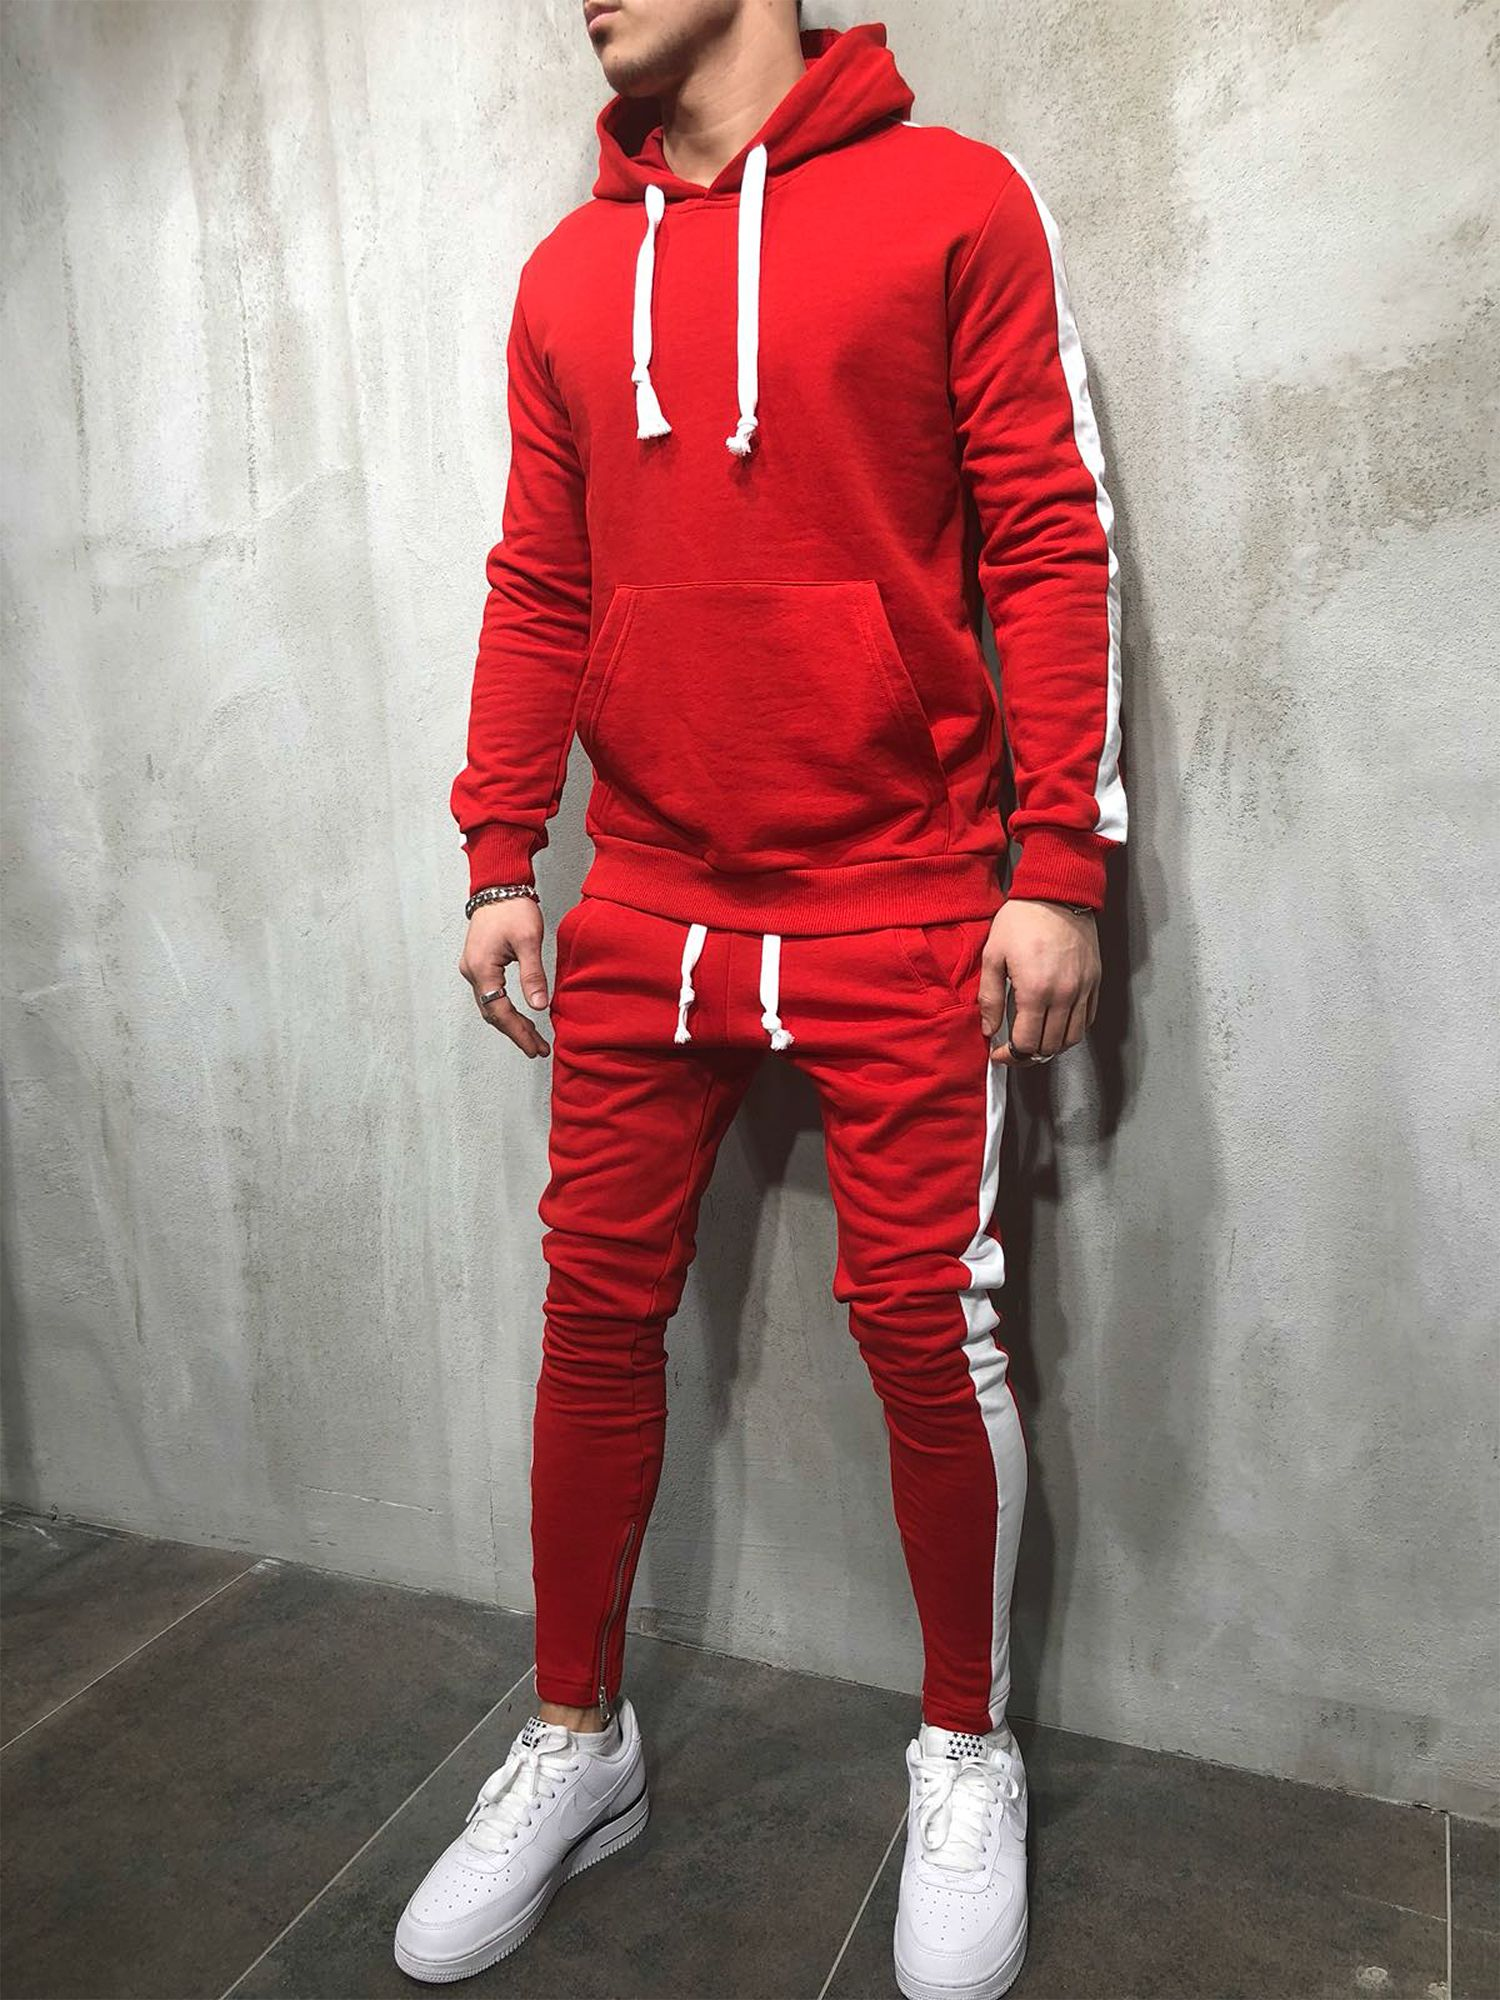 Men's Streetwear Red Tracksuit with White Stripes